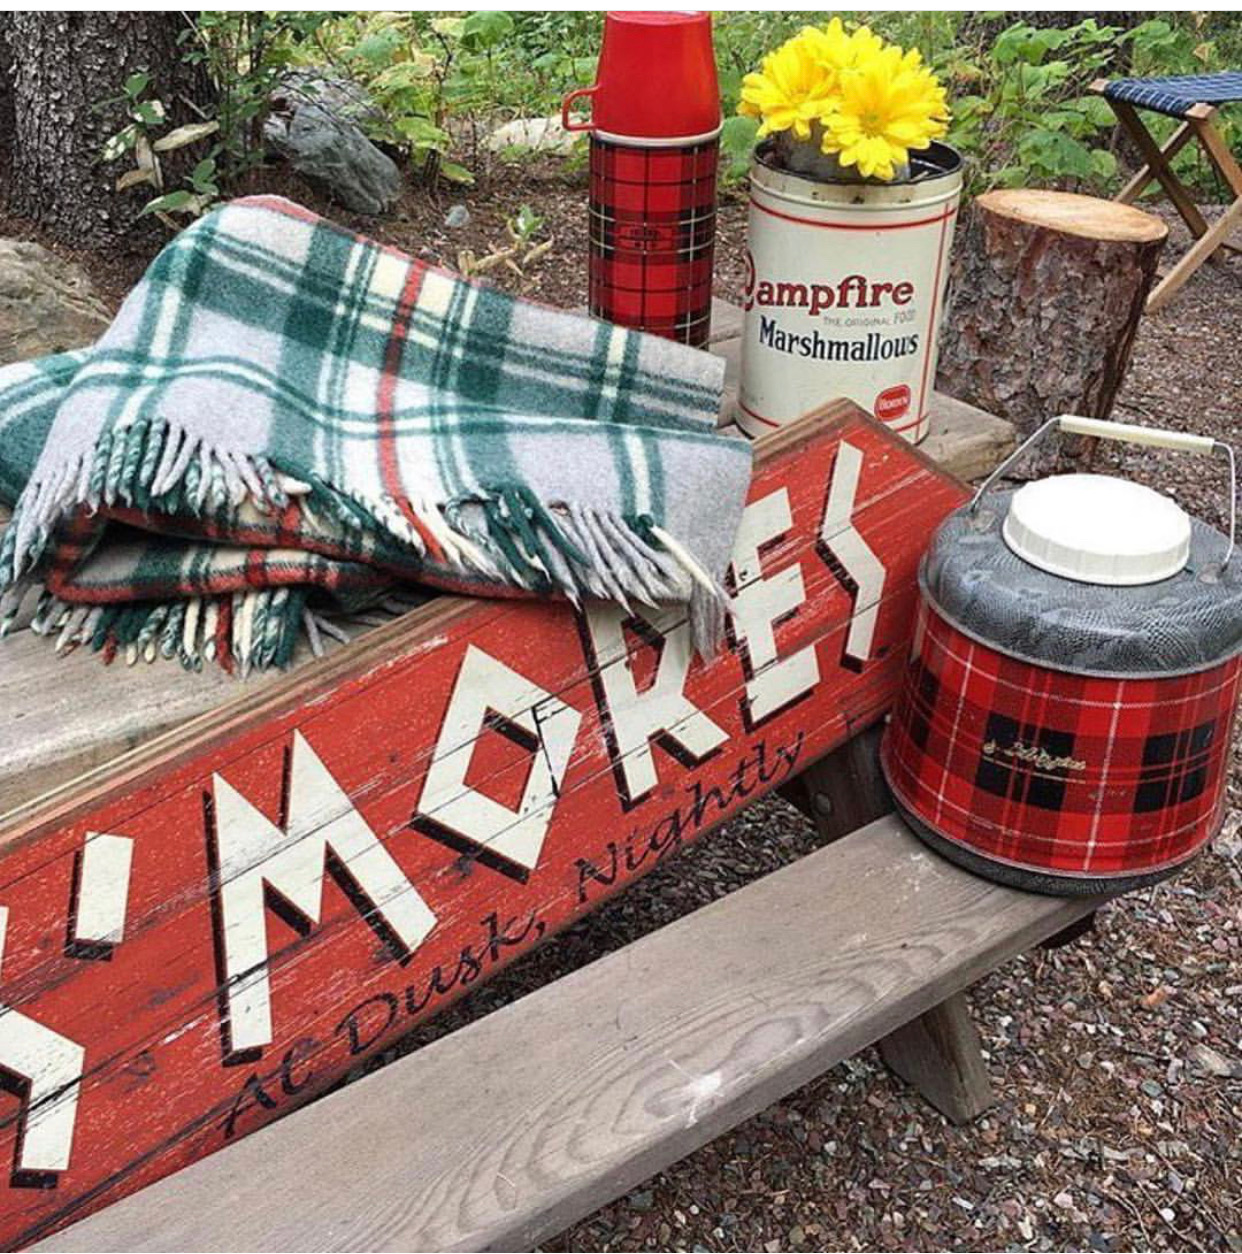 Vintage Camp Blanket, S'mores sign, thermos and Campfire Marshmallow Tin